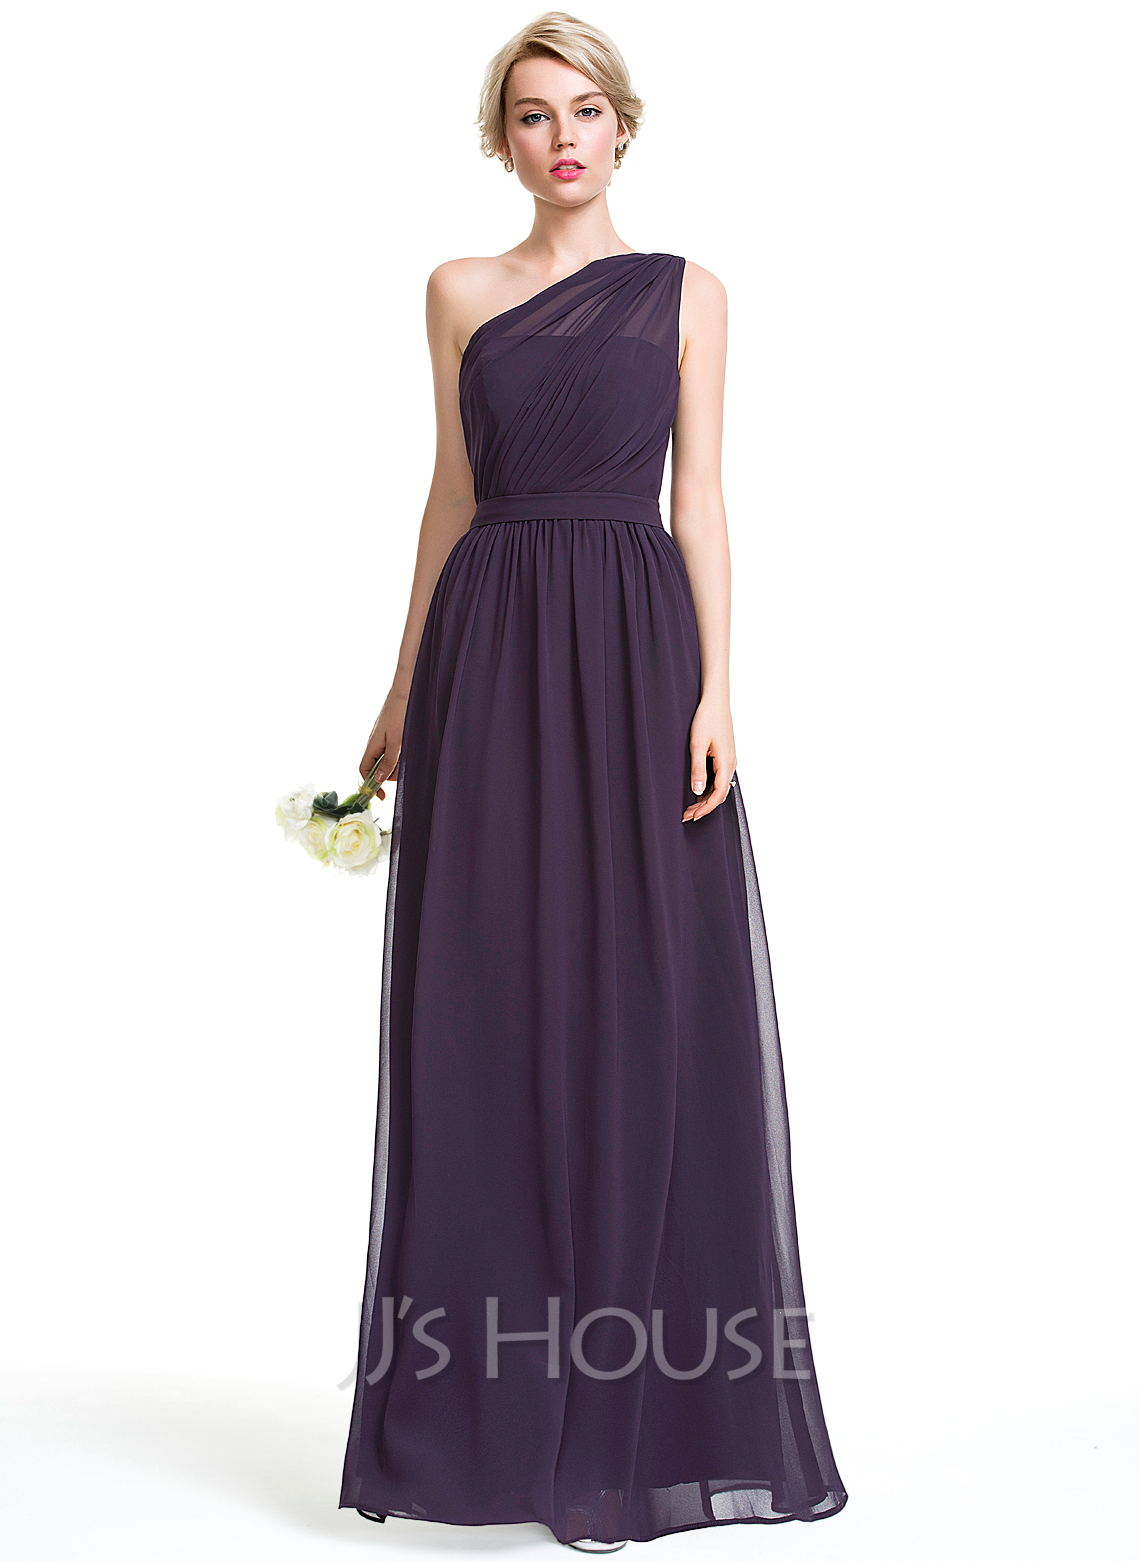 One-Shoulder Floor-Length Chiffon Bridesmaid Dress With Ruffle